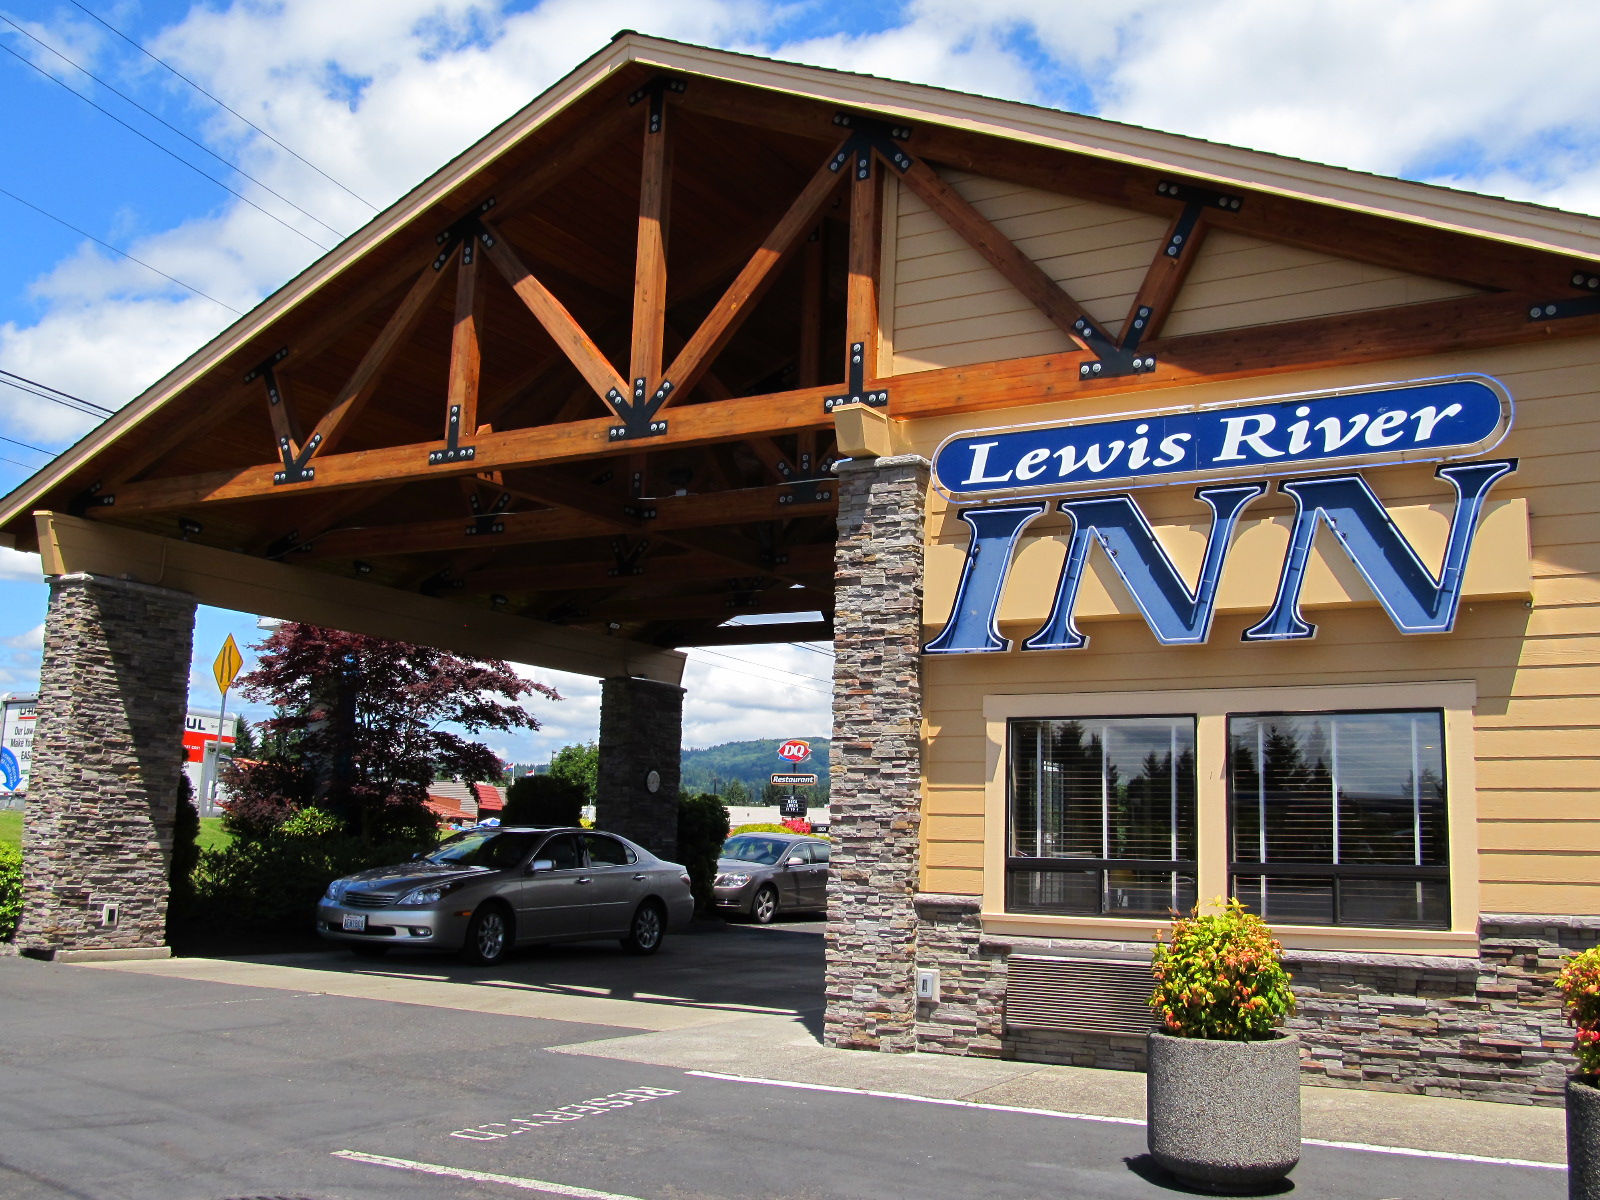 Lewis River Inn